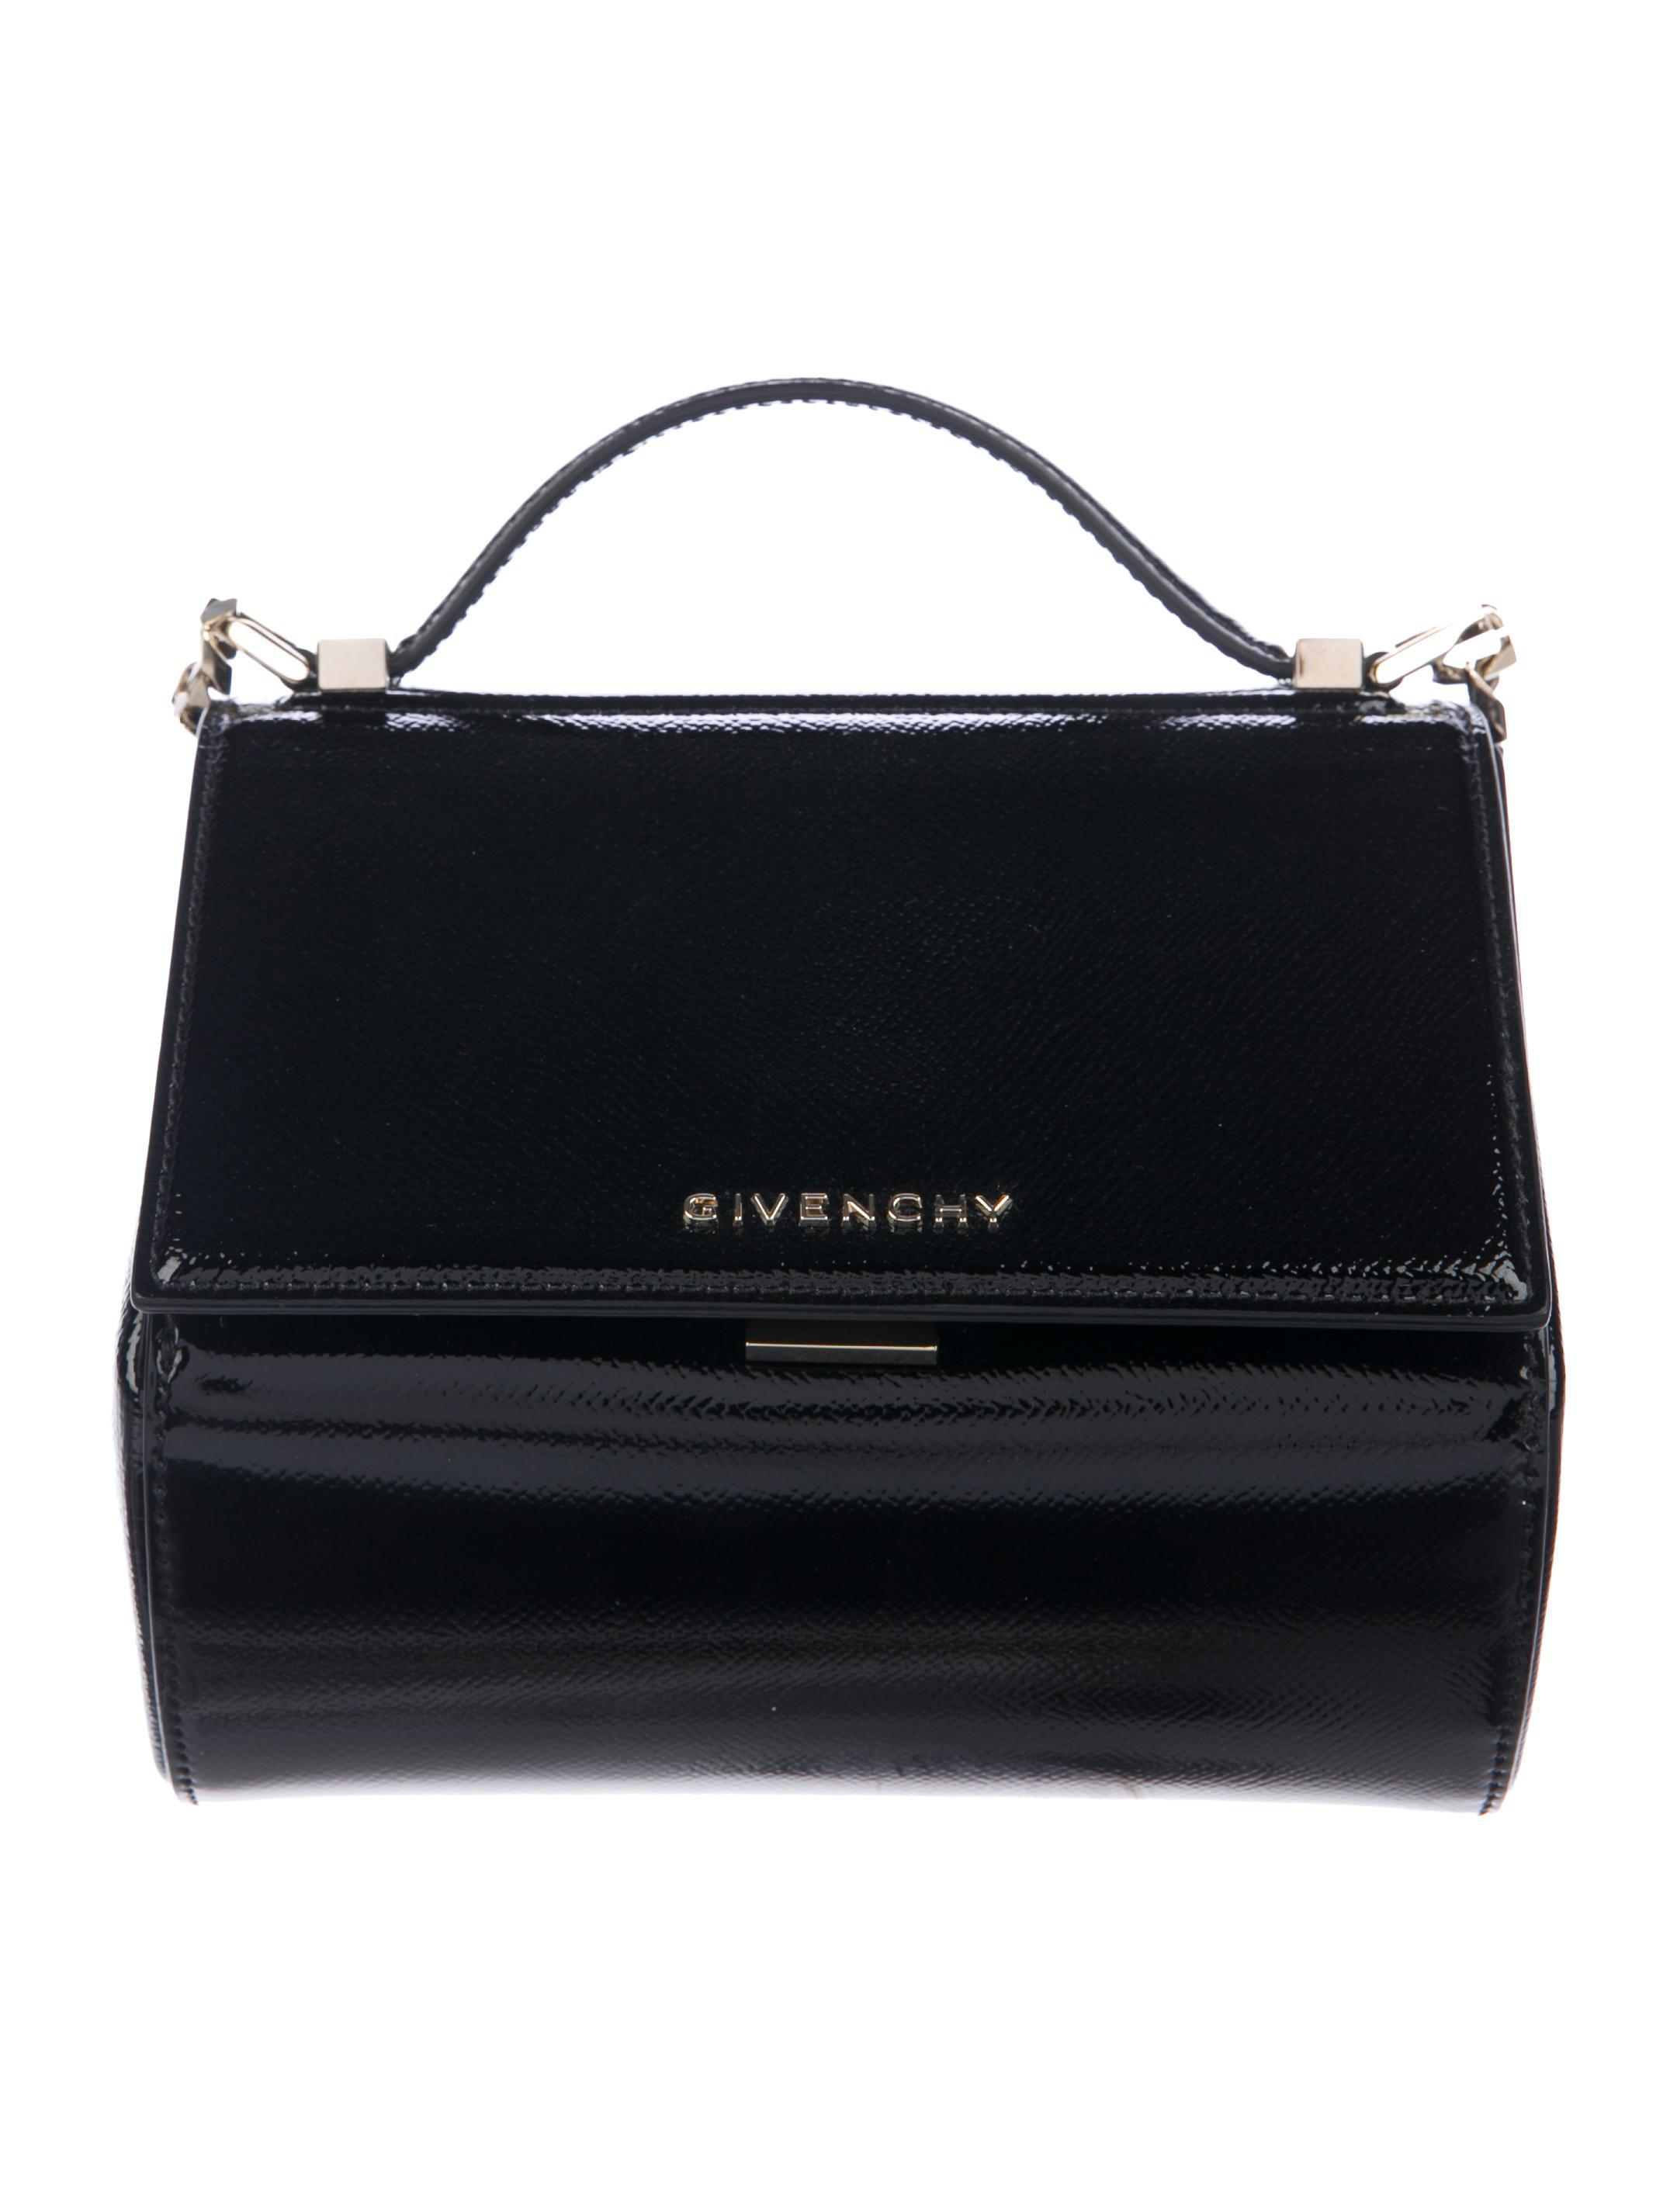 fe03dc2b26 Lyst - Givenchy Mini Pandora Box Bag Black in Metallic